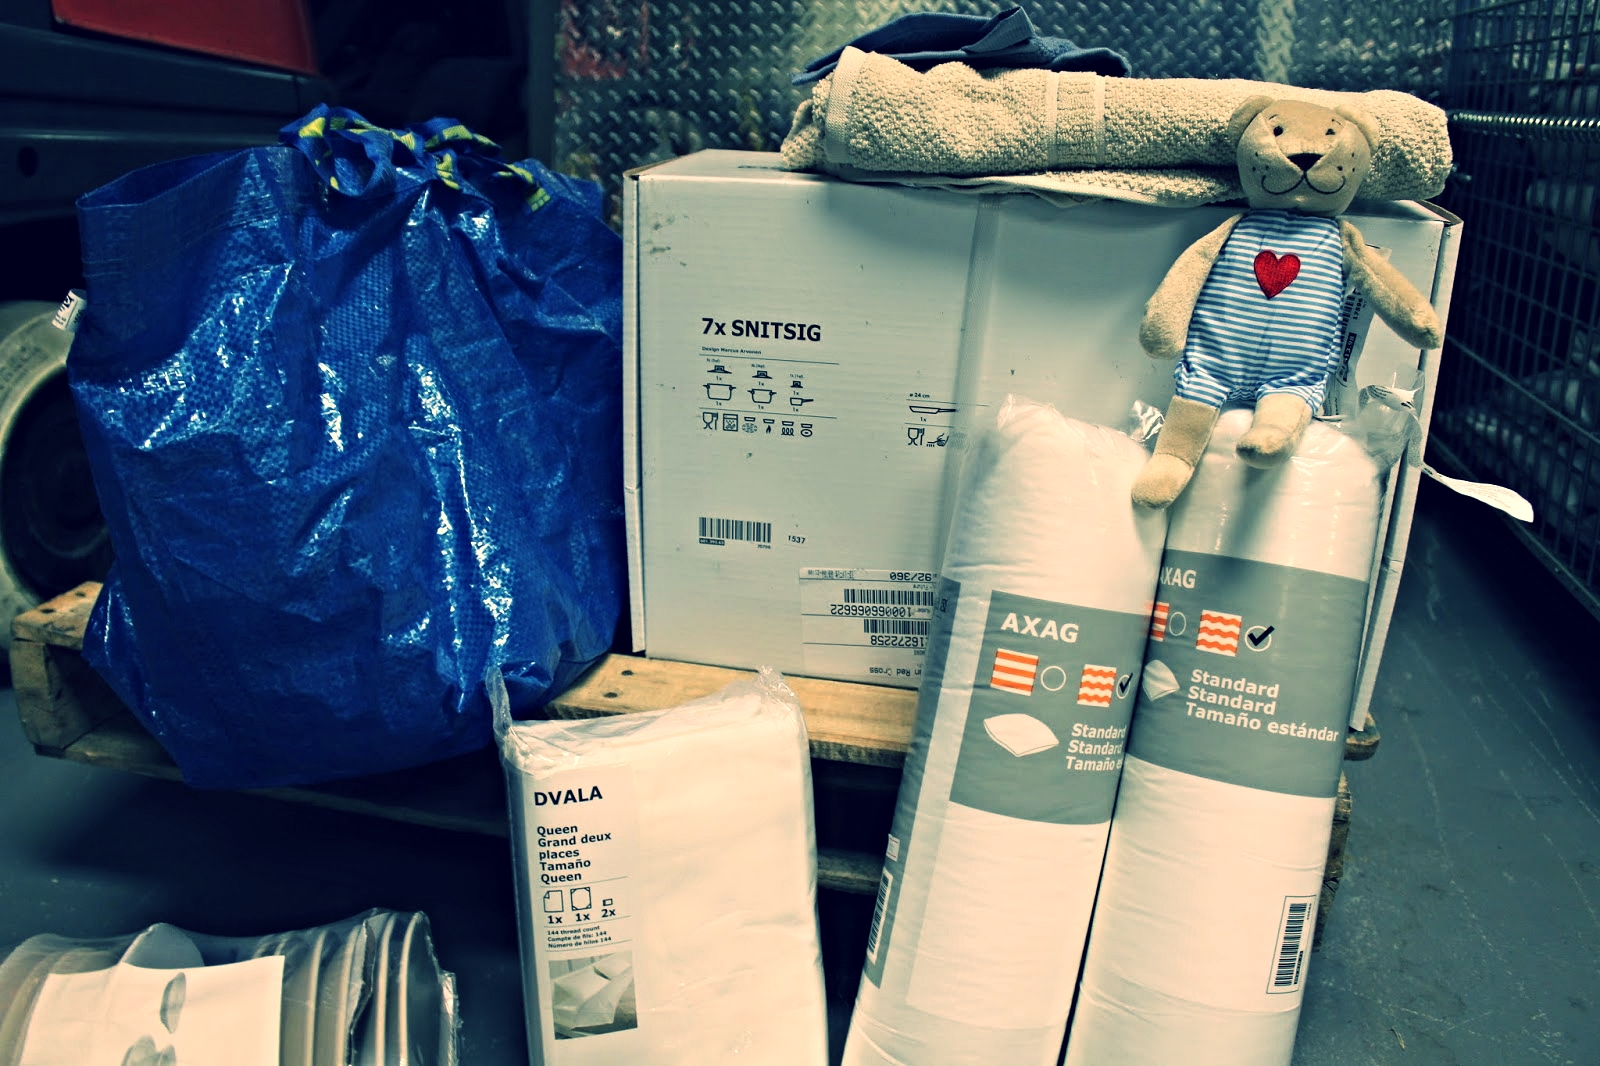 Refugees arrive without the basics; the Red Cross is helping to provide necessities like sheets, pillows, towels - and teddy bears.